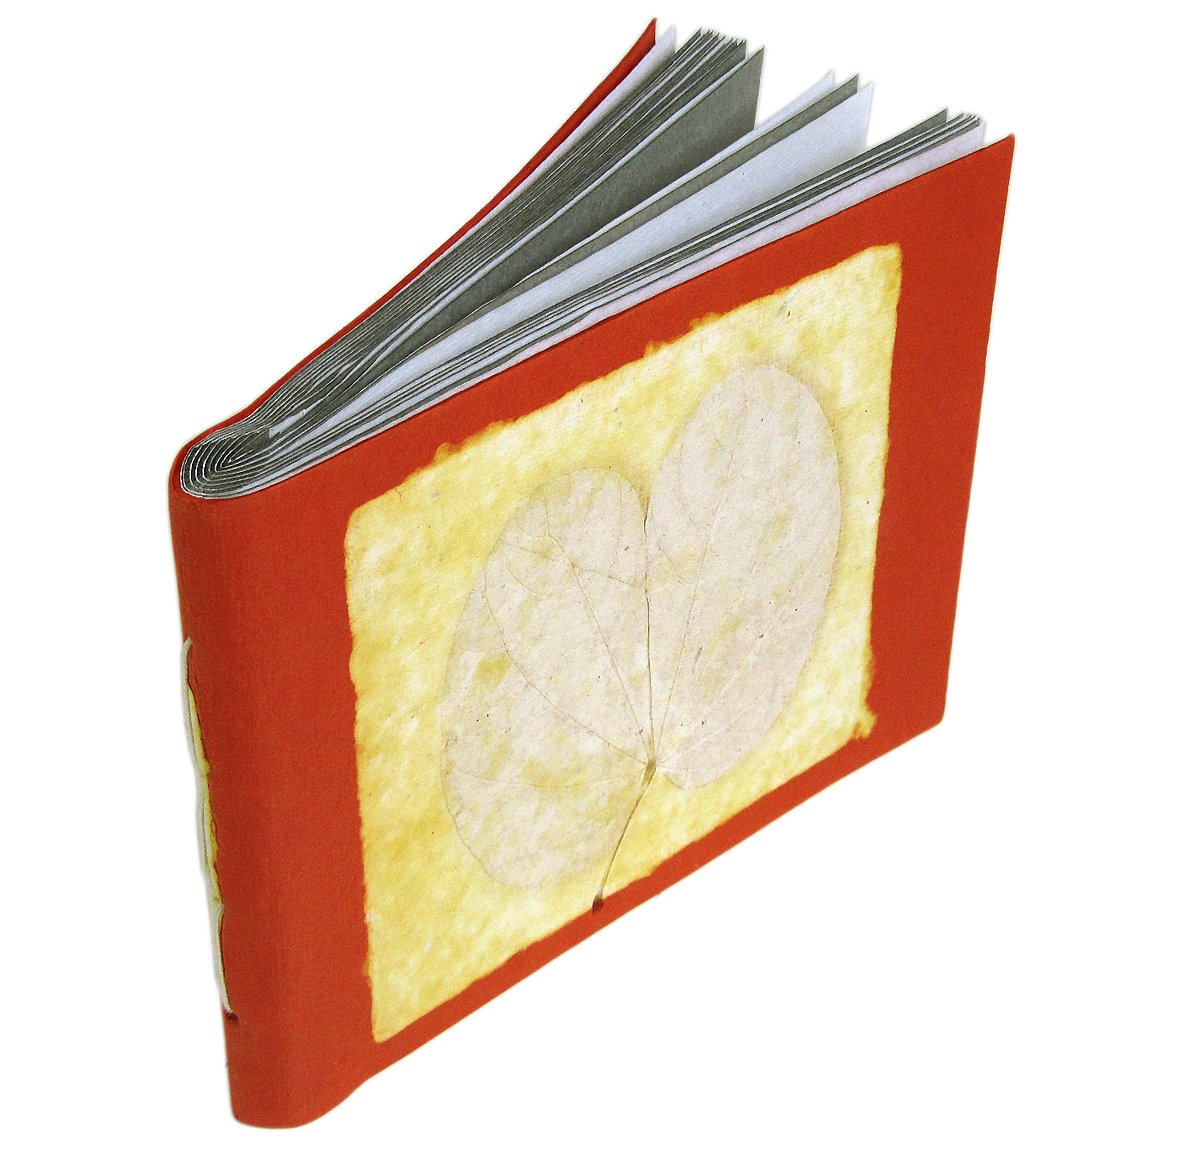 5x7 photo albums 16pp book handmade orange recycled handcrafted paper craft wedding gifts